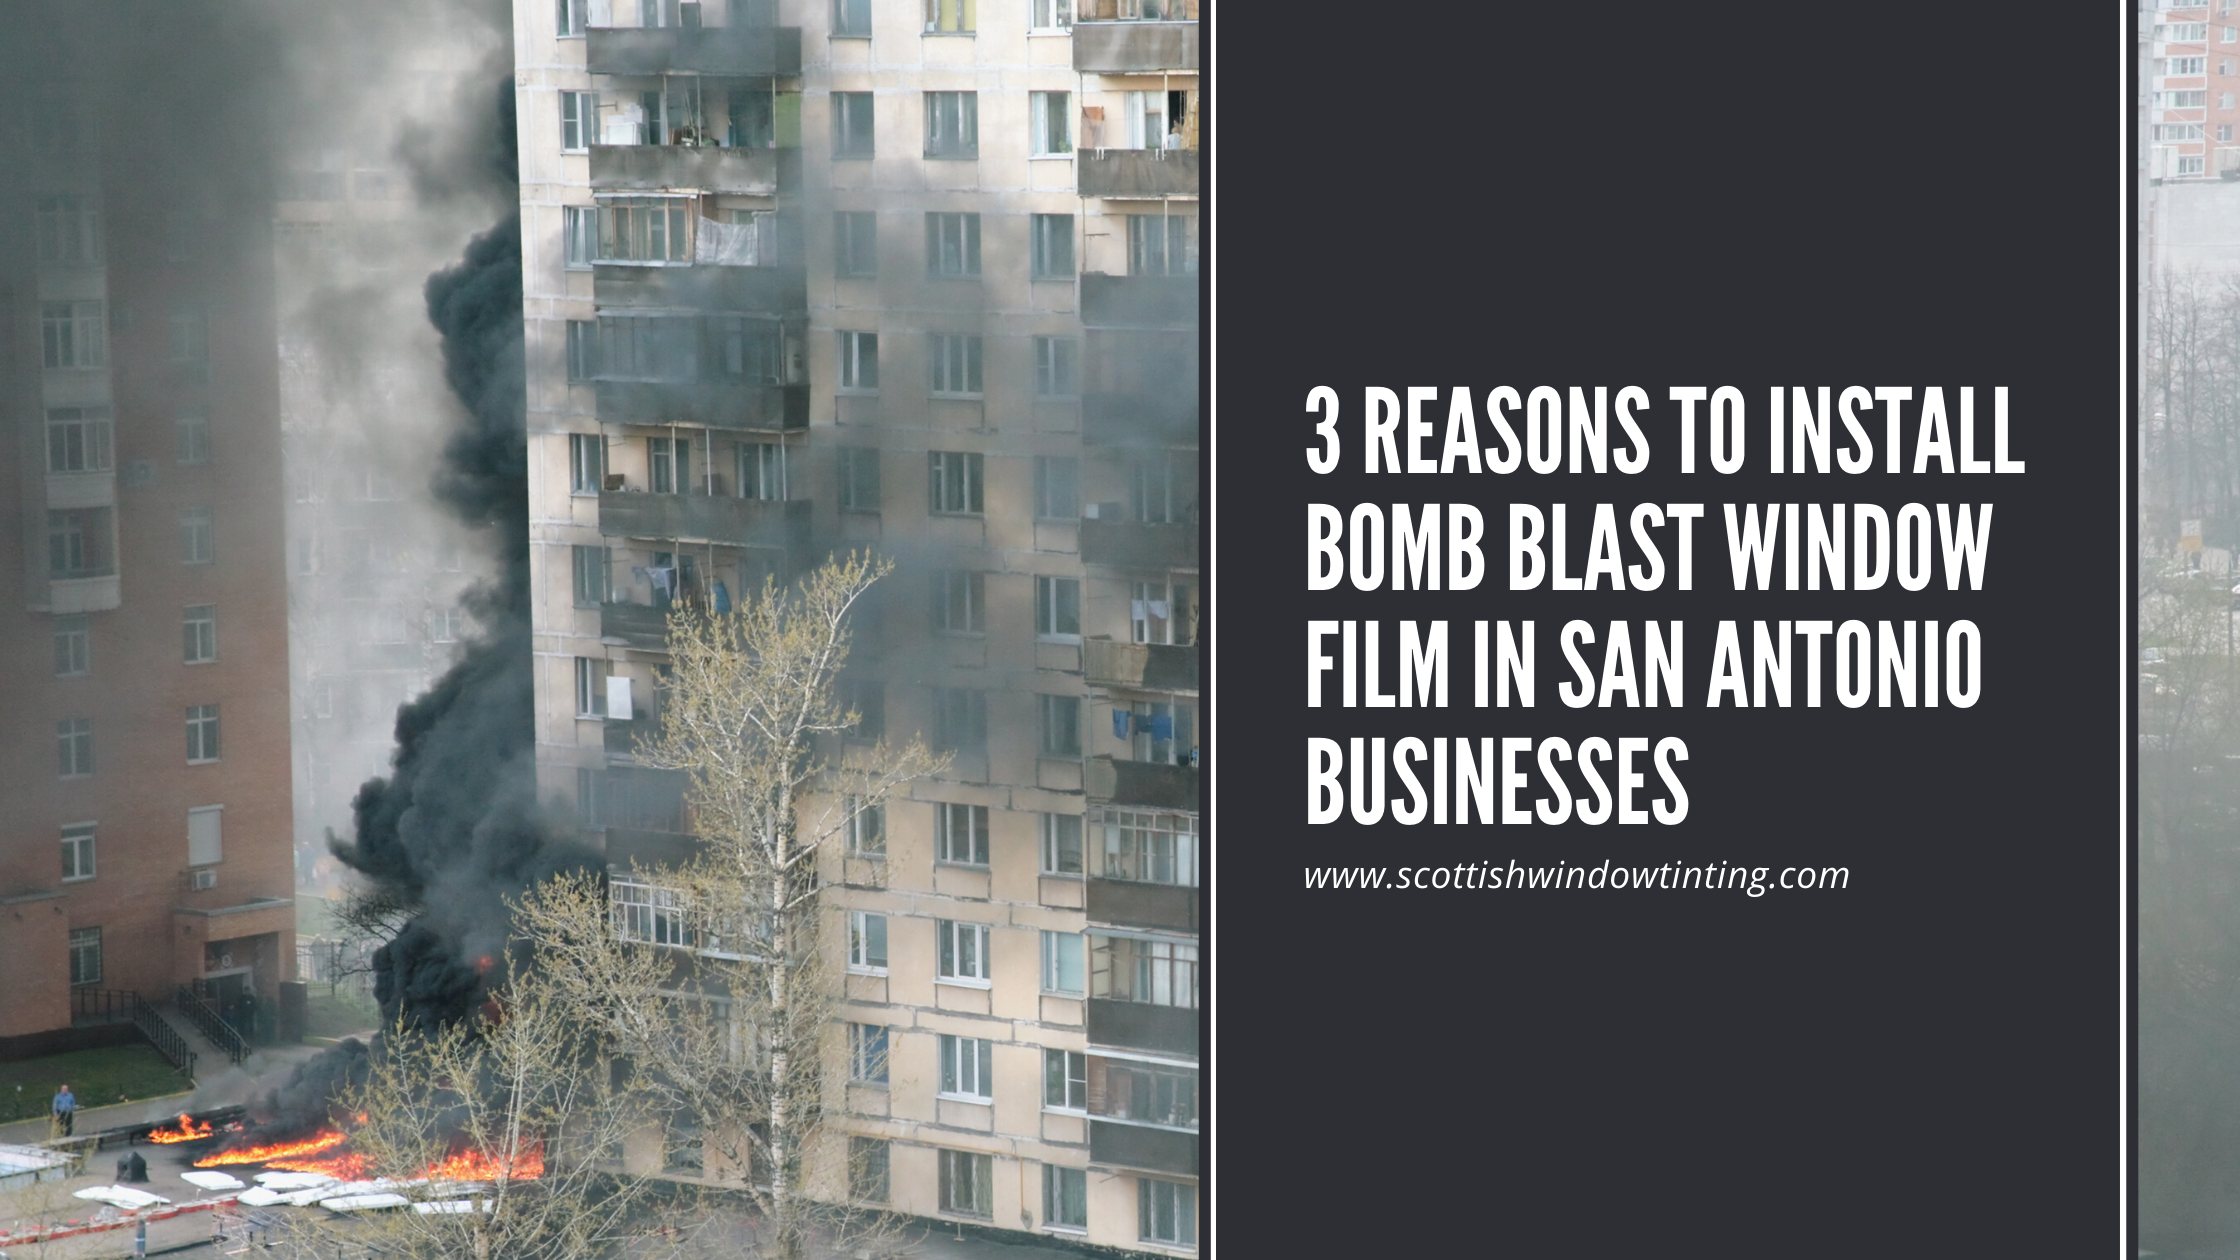 3 Reasons to Install Bomb Blast Window Film in San Antonio Businesses